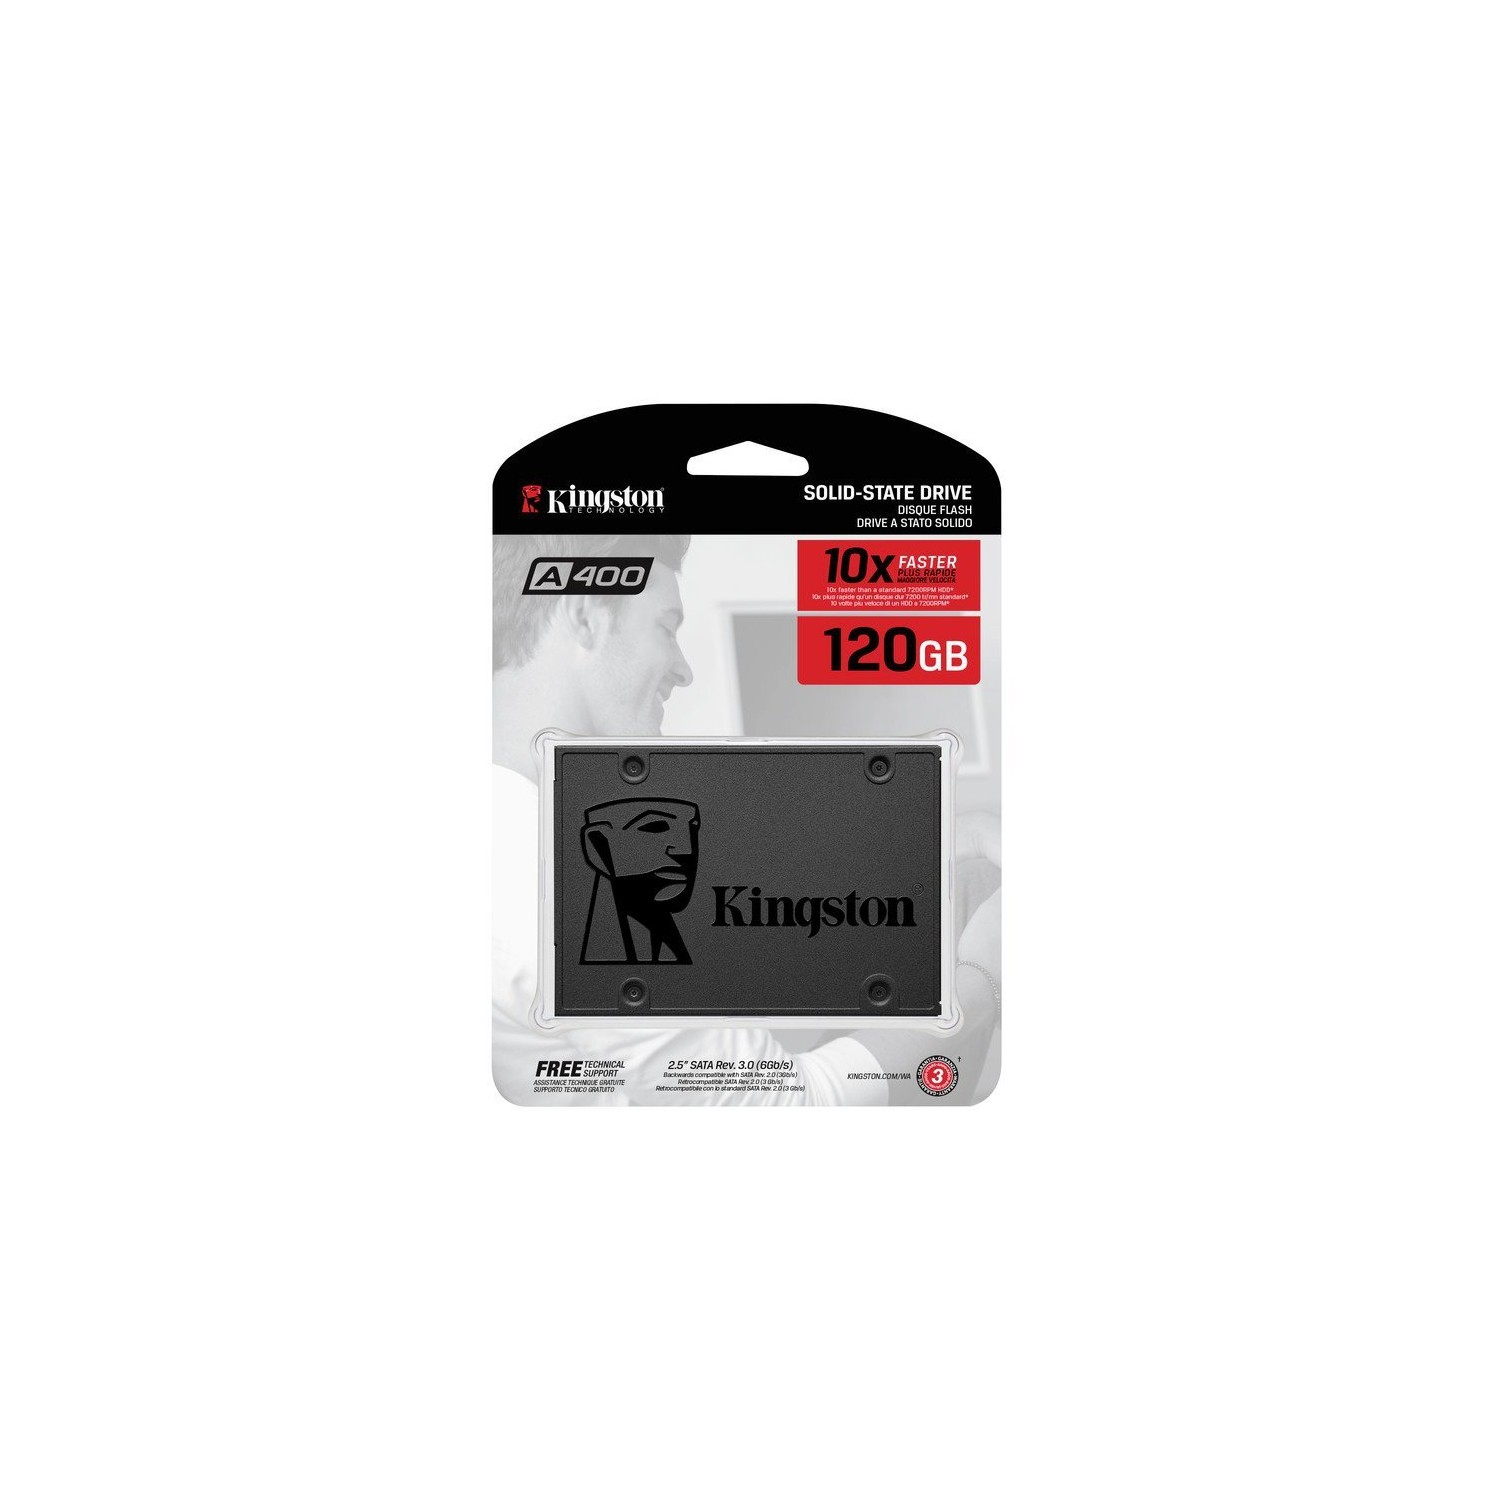 Kingston A400 Ssd 120gb Sata 3 25 Internal Solid State Drive Iii Sa400s37 120g Increased Performance 500mb S Best Buy Canada